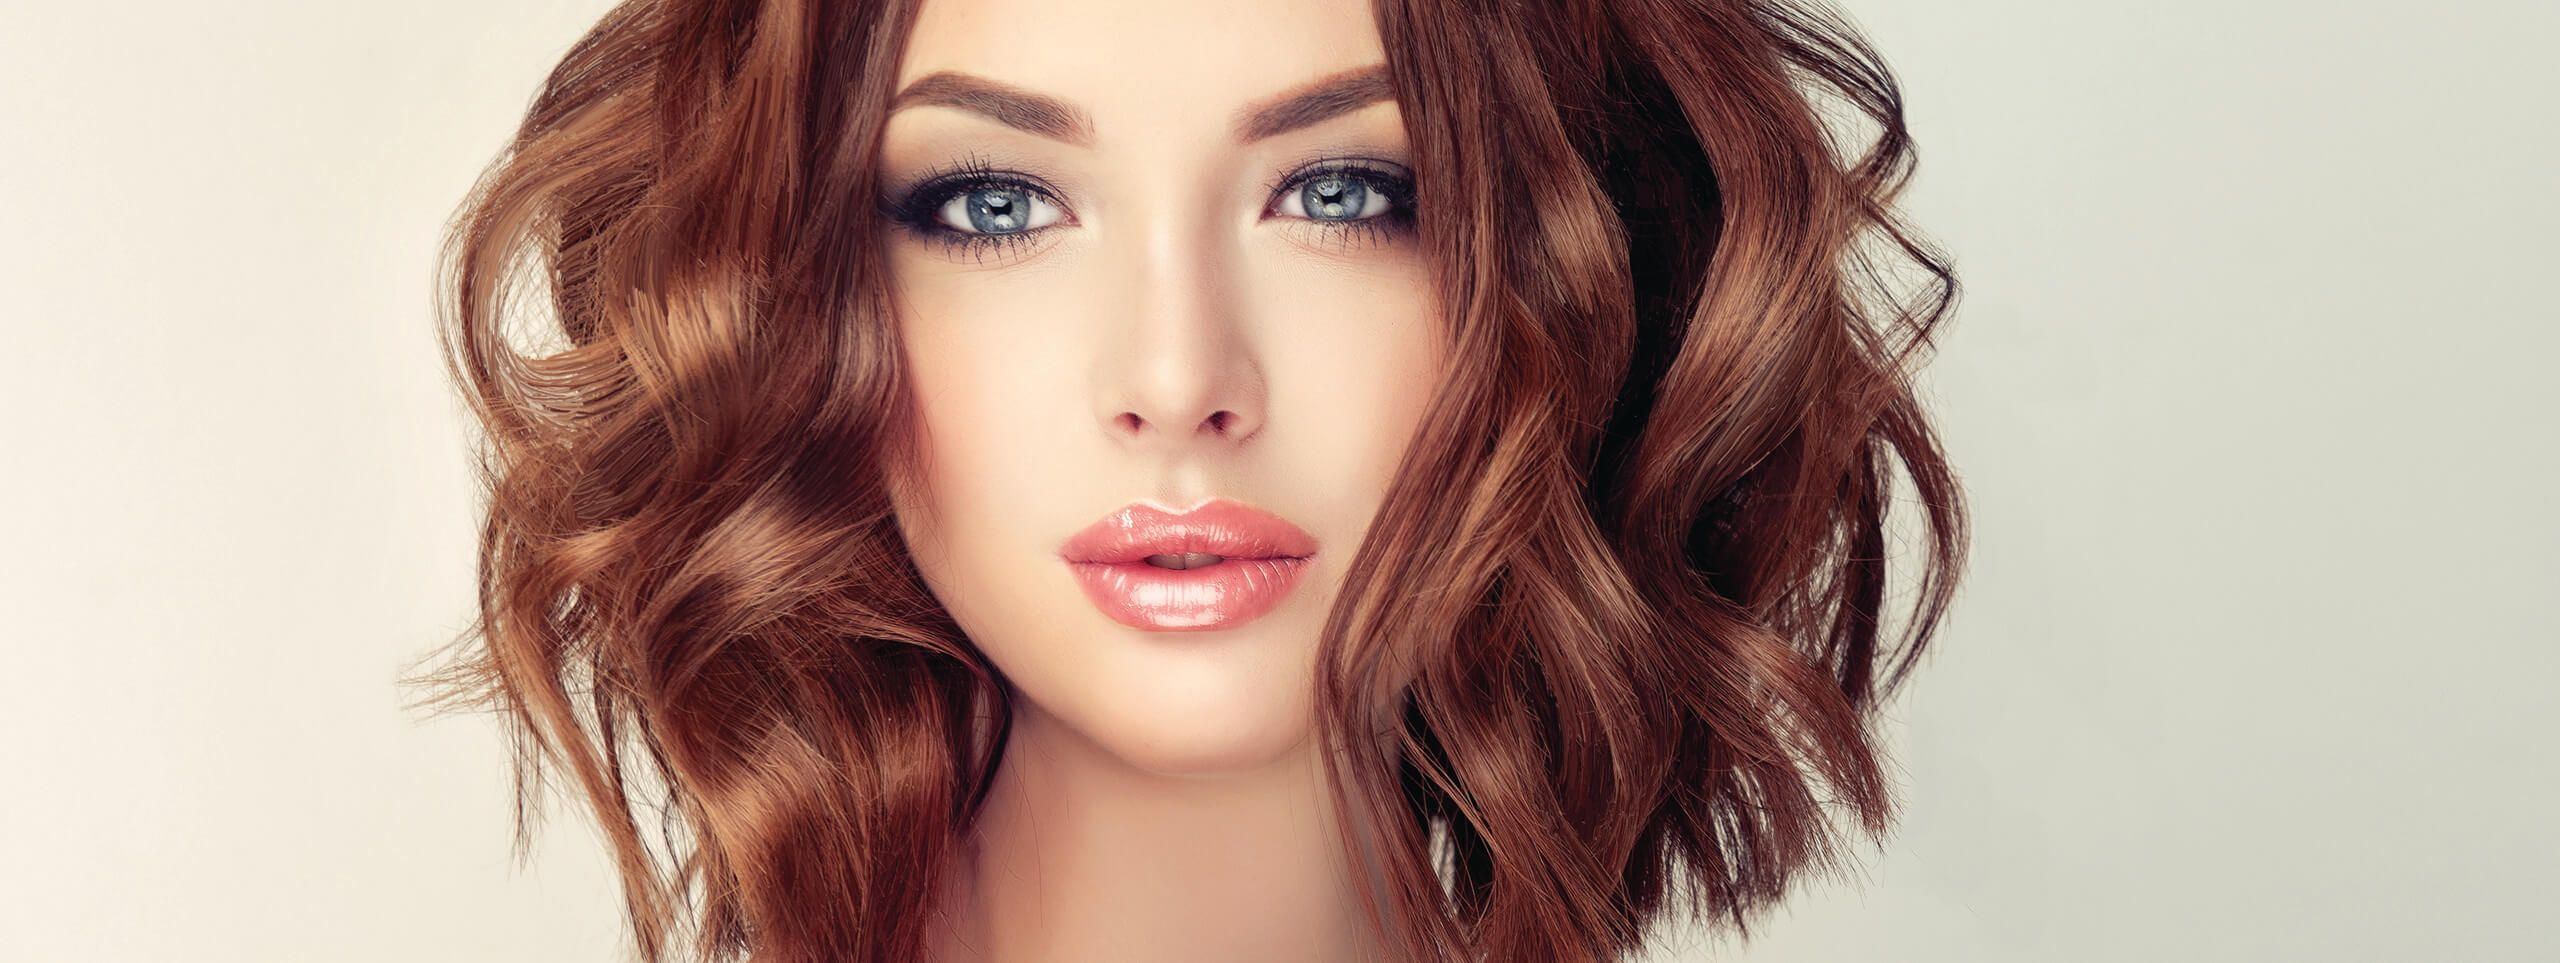 Woman with wavy hairstyle